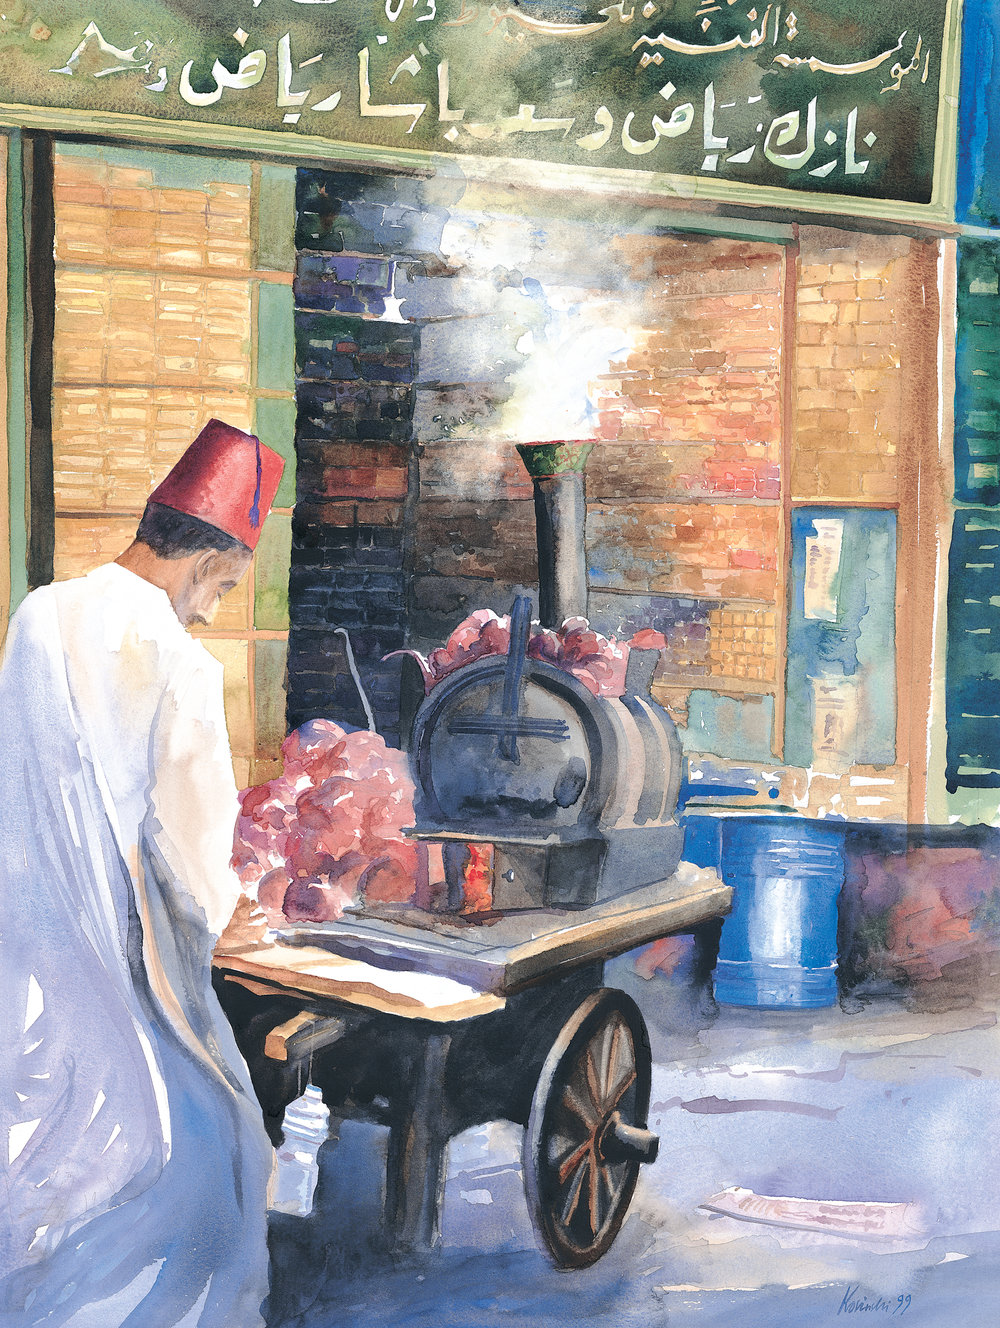 Baked Potato Seller, Cairo